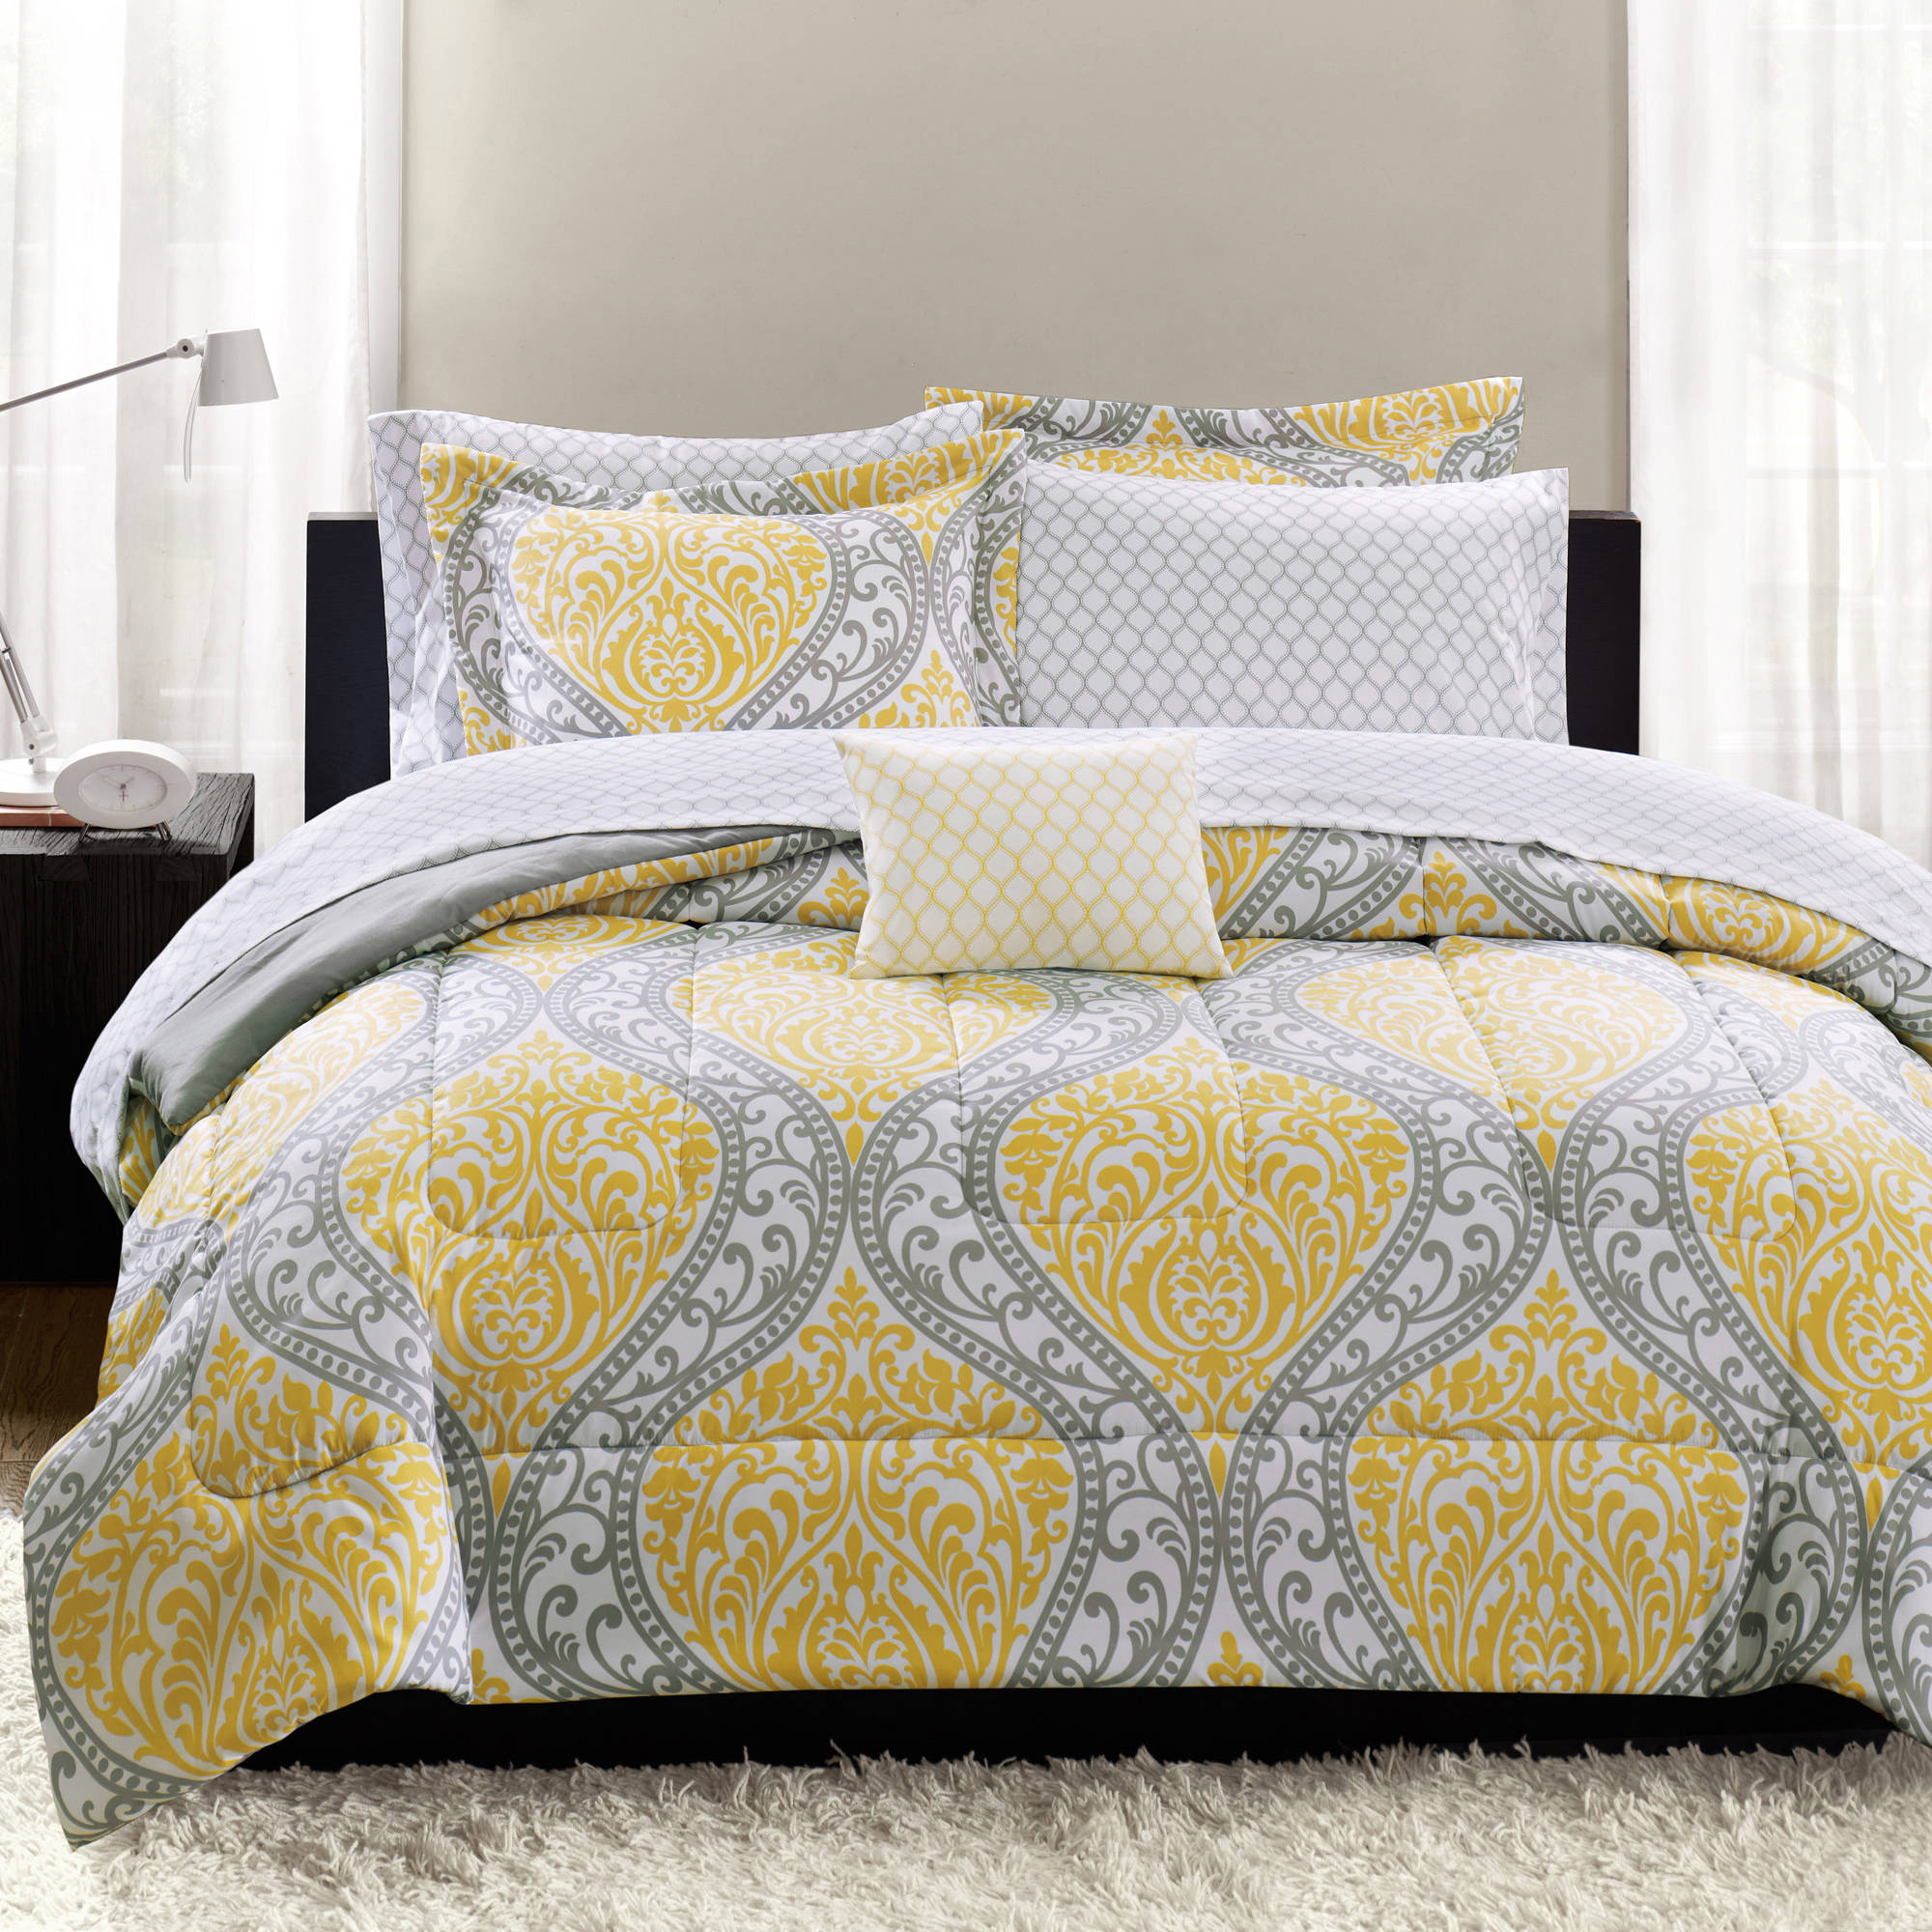 Bedding sets for women - Bedding Sets For Women 14